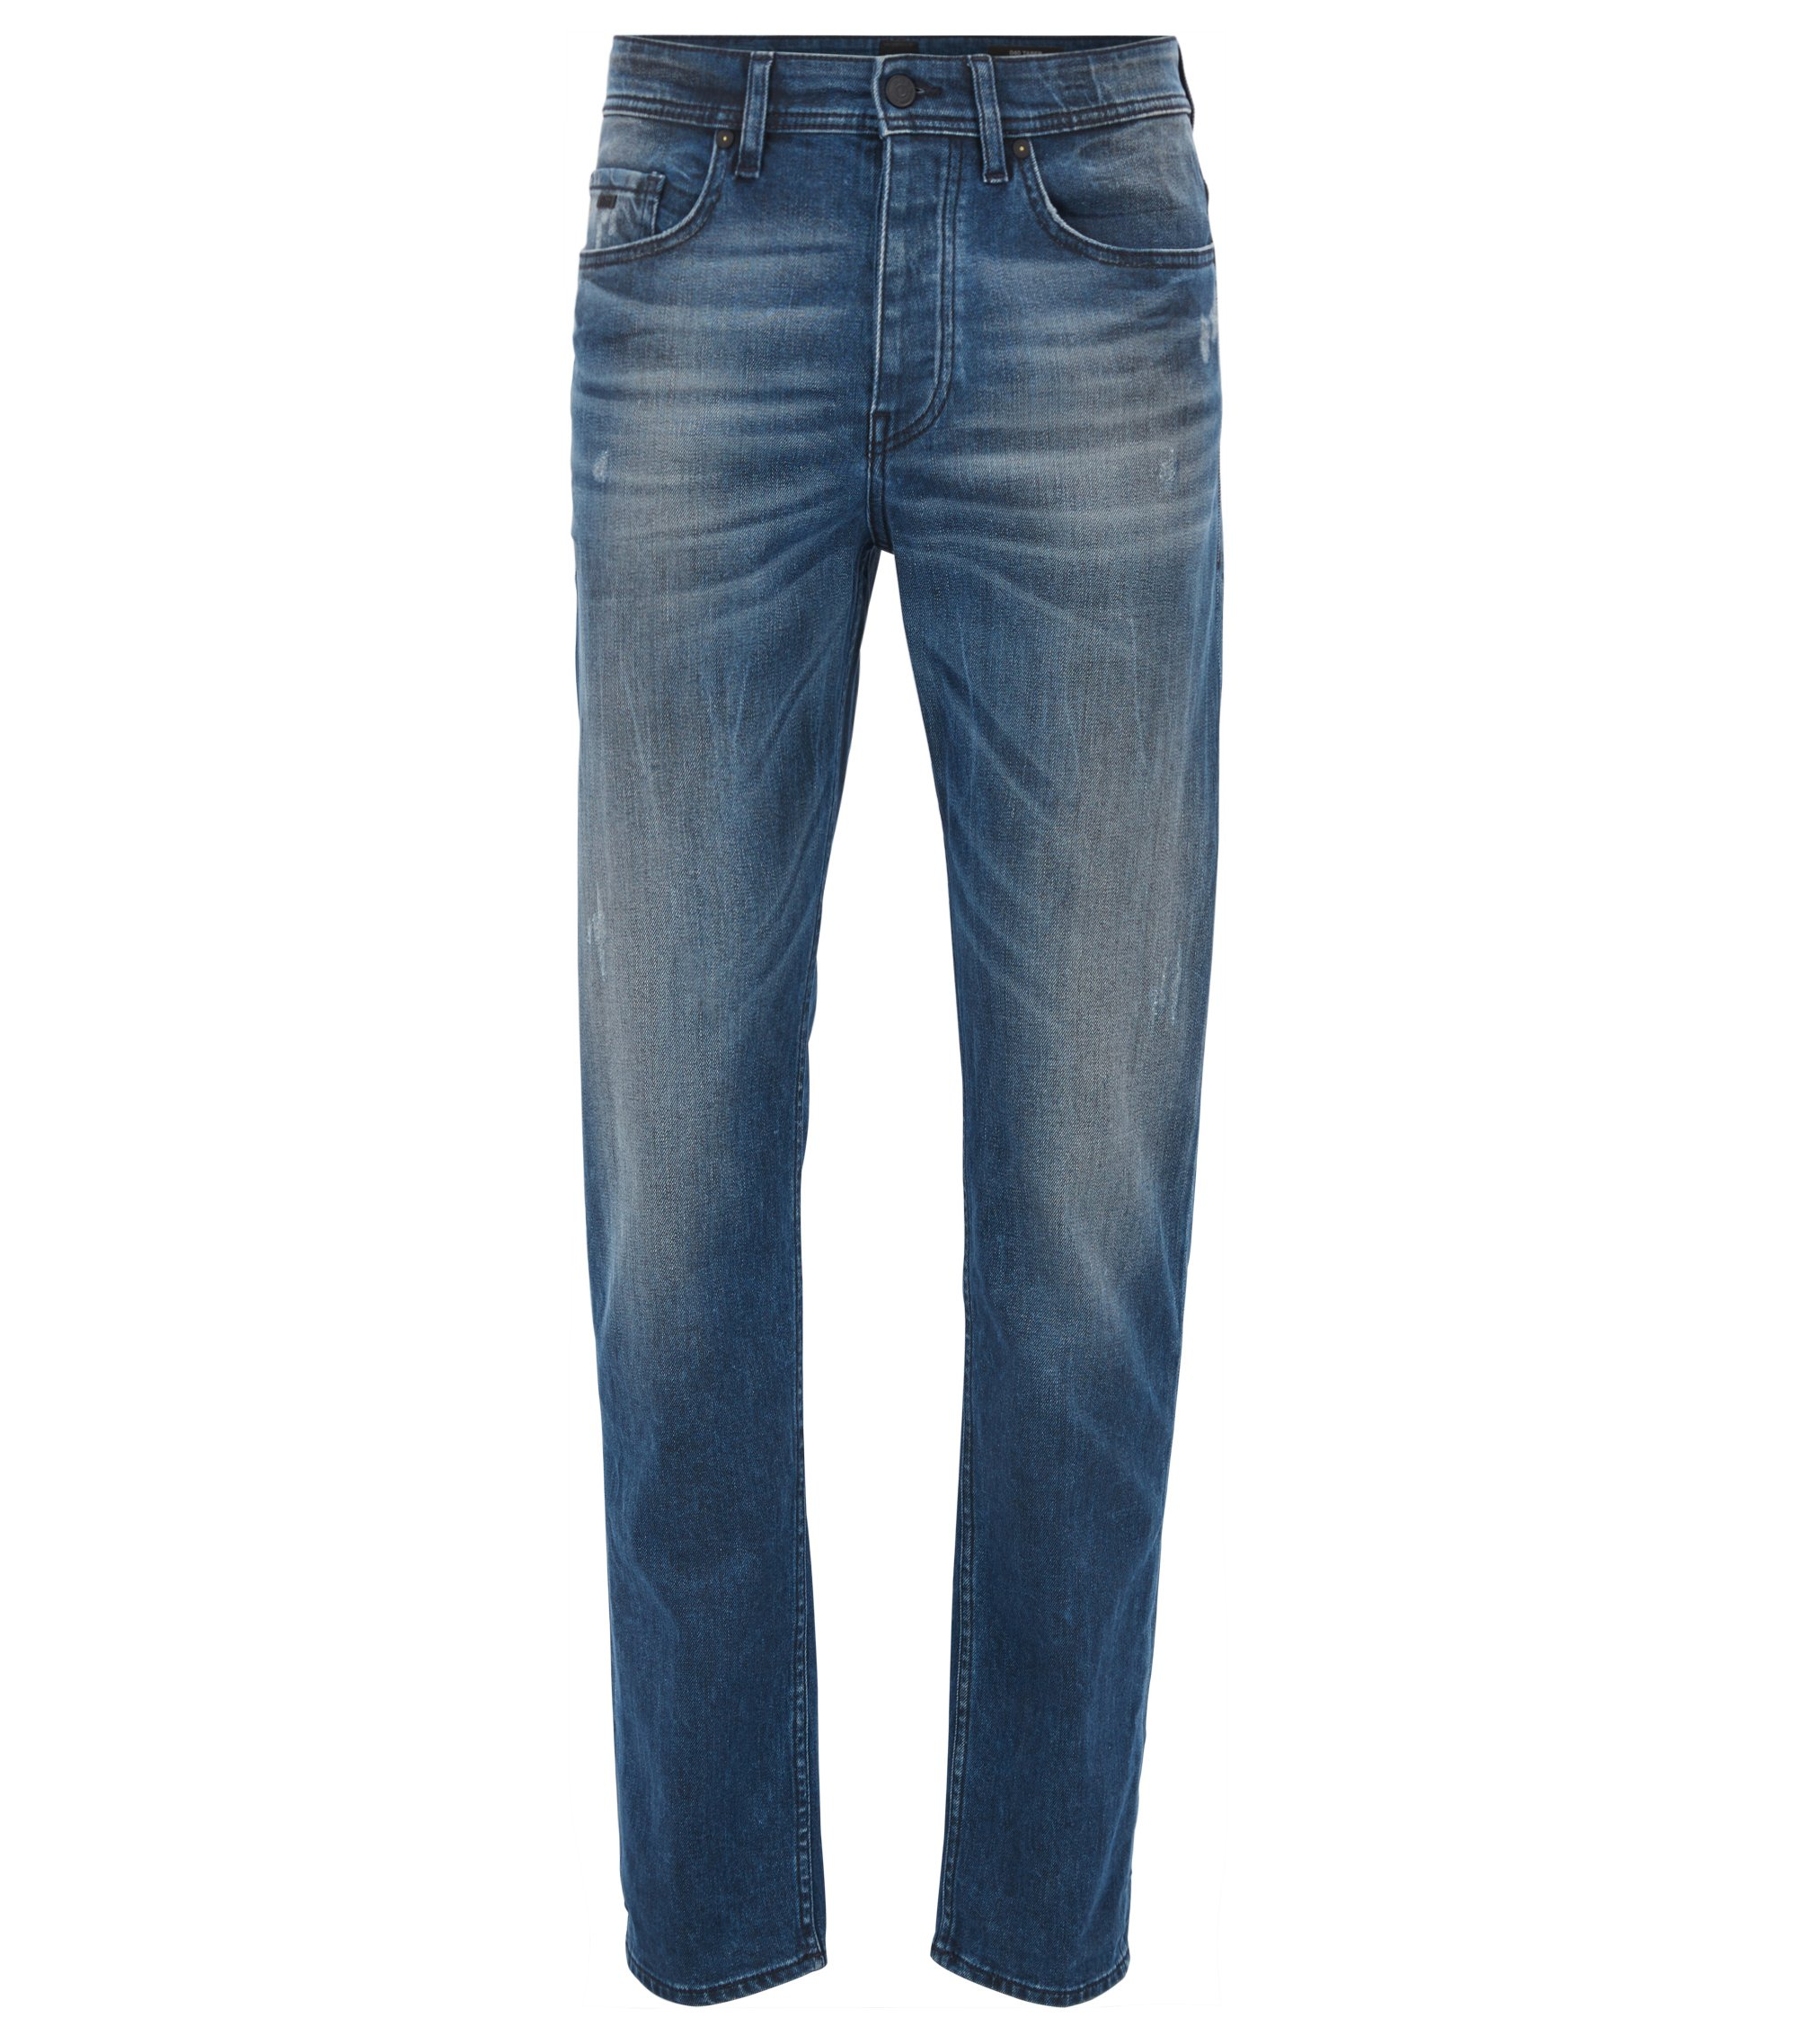 Jeans tapered fit in denim elasticizzato blu medio rivestito, Blu